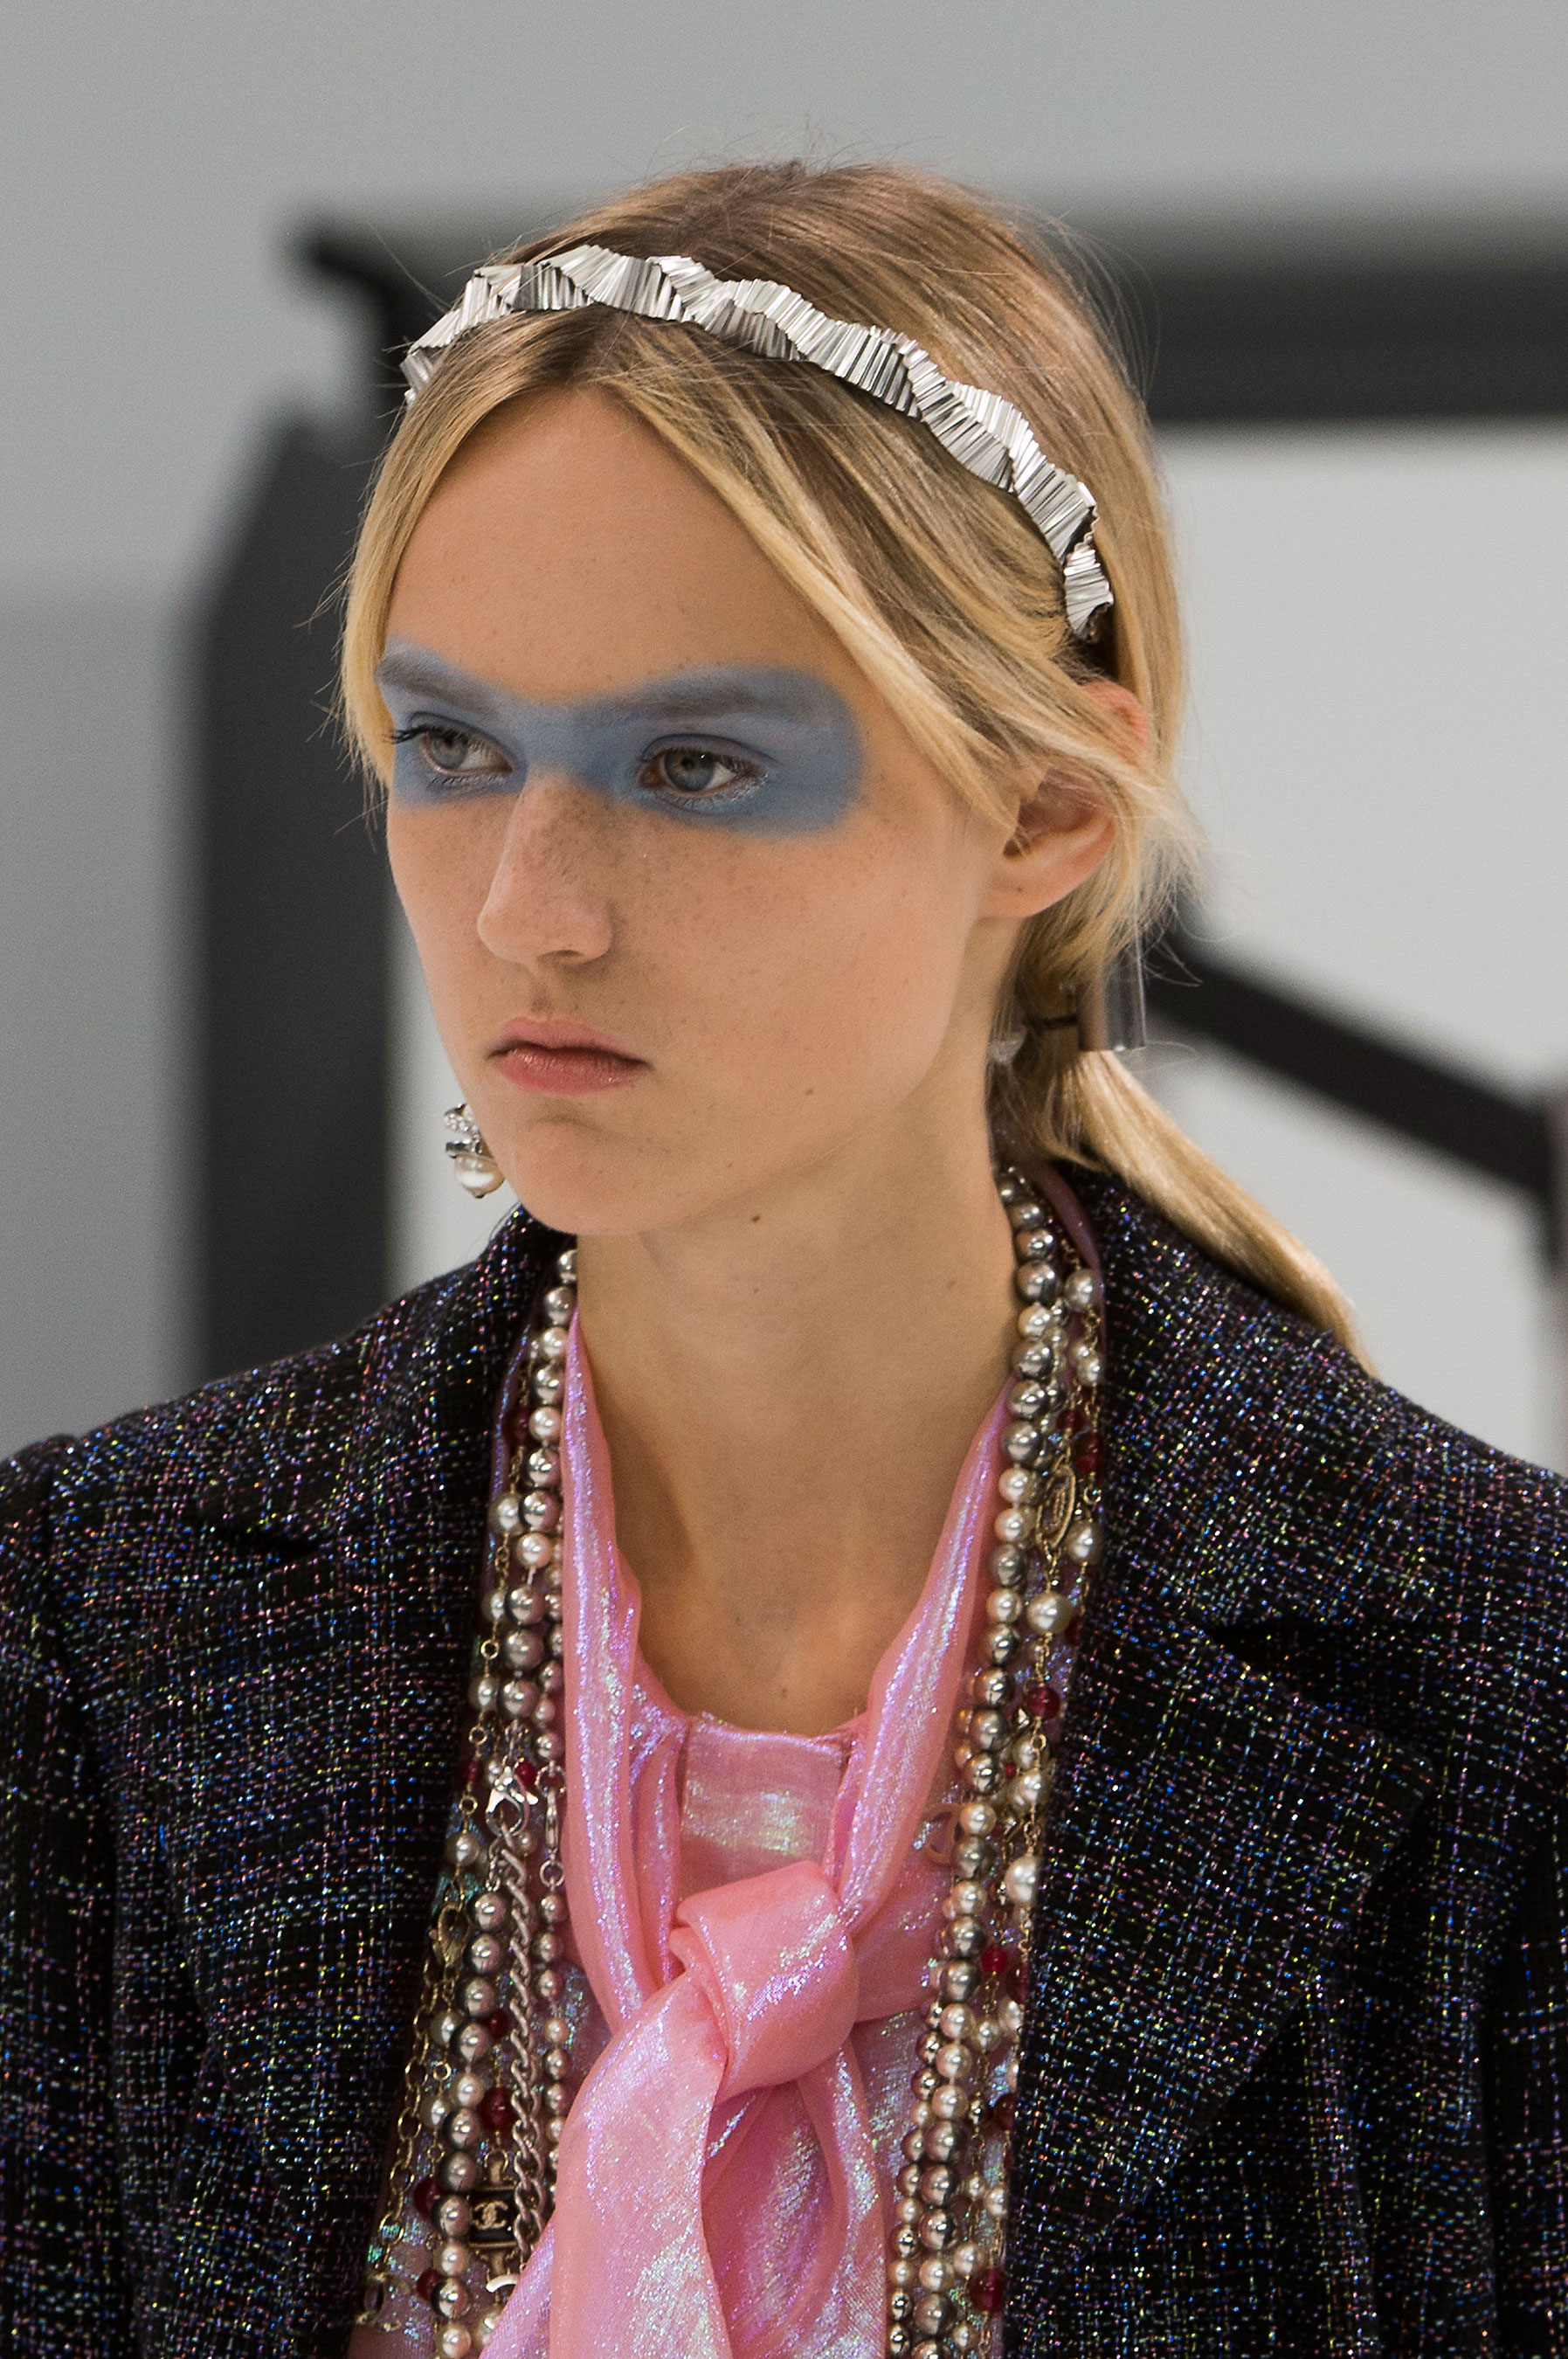 Chanel-spring-2016-runway-beauty-fashion-show-the-impression-35